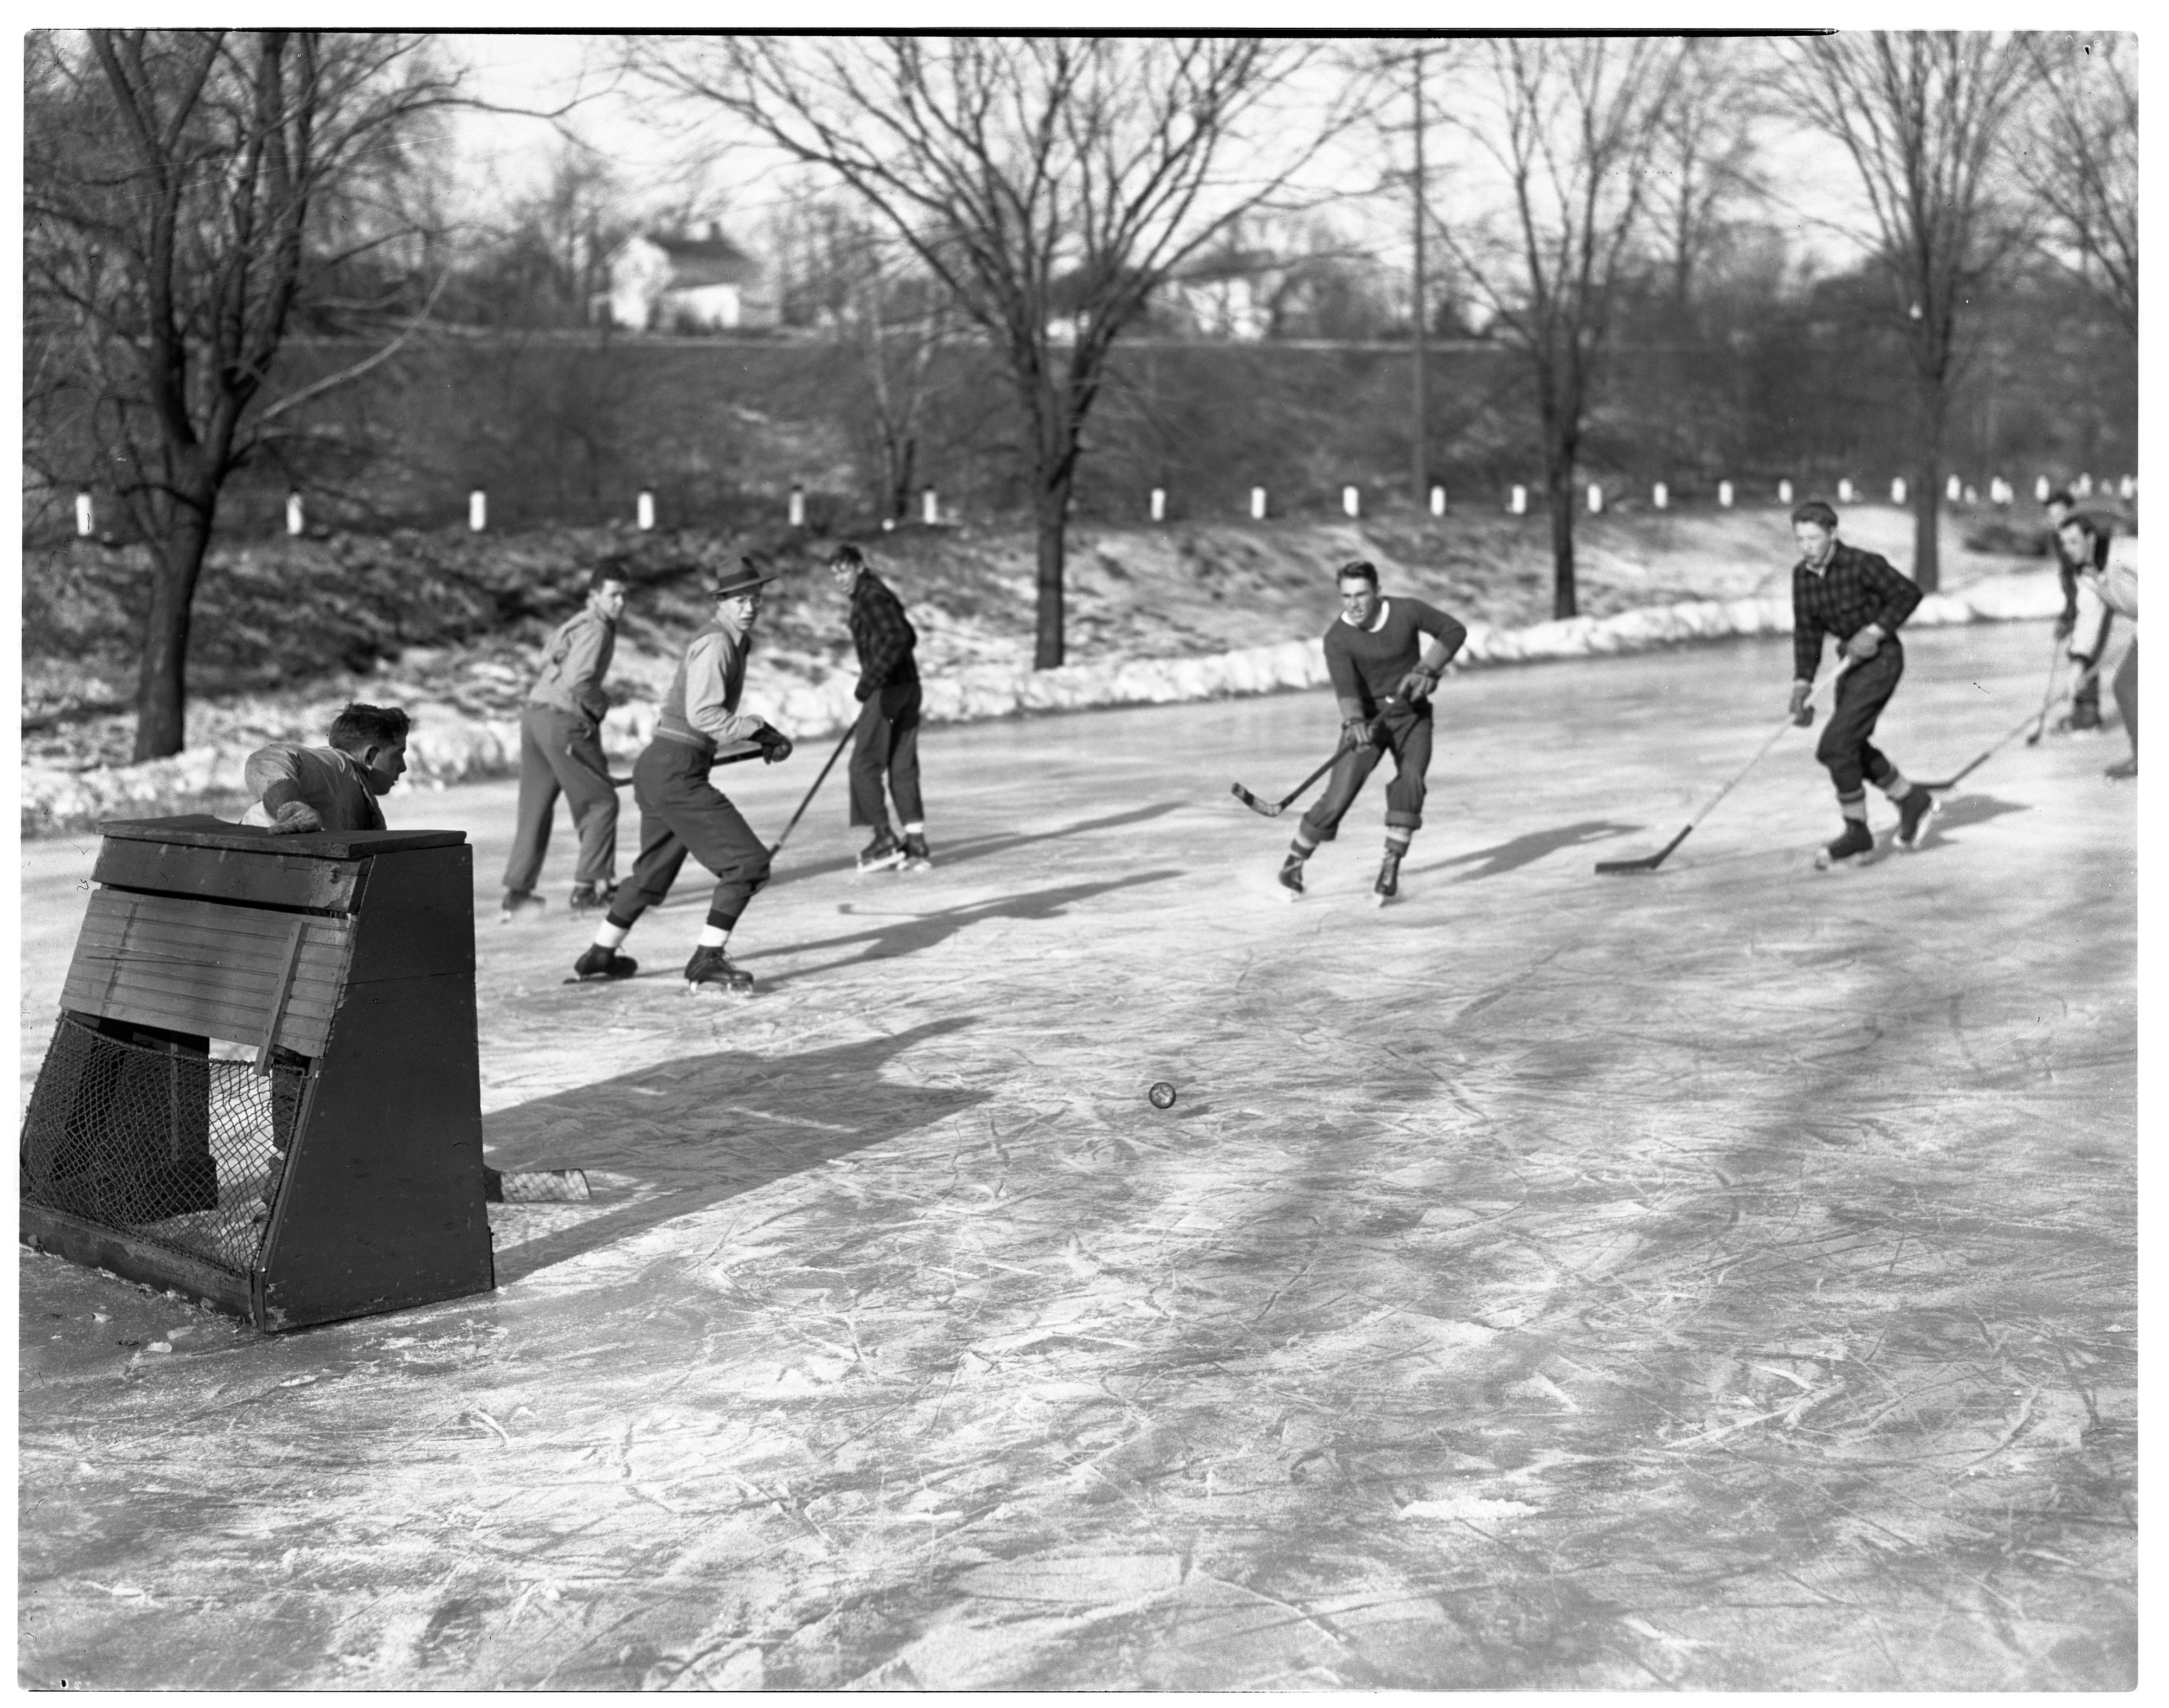 Outdoor Hockey at North Side Pond, January 1947 image